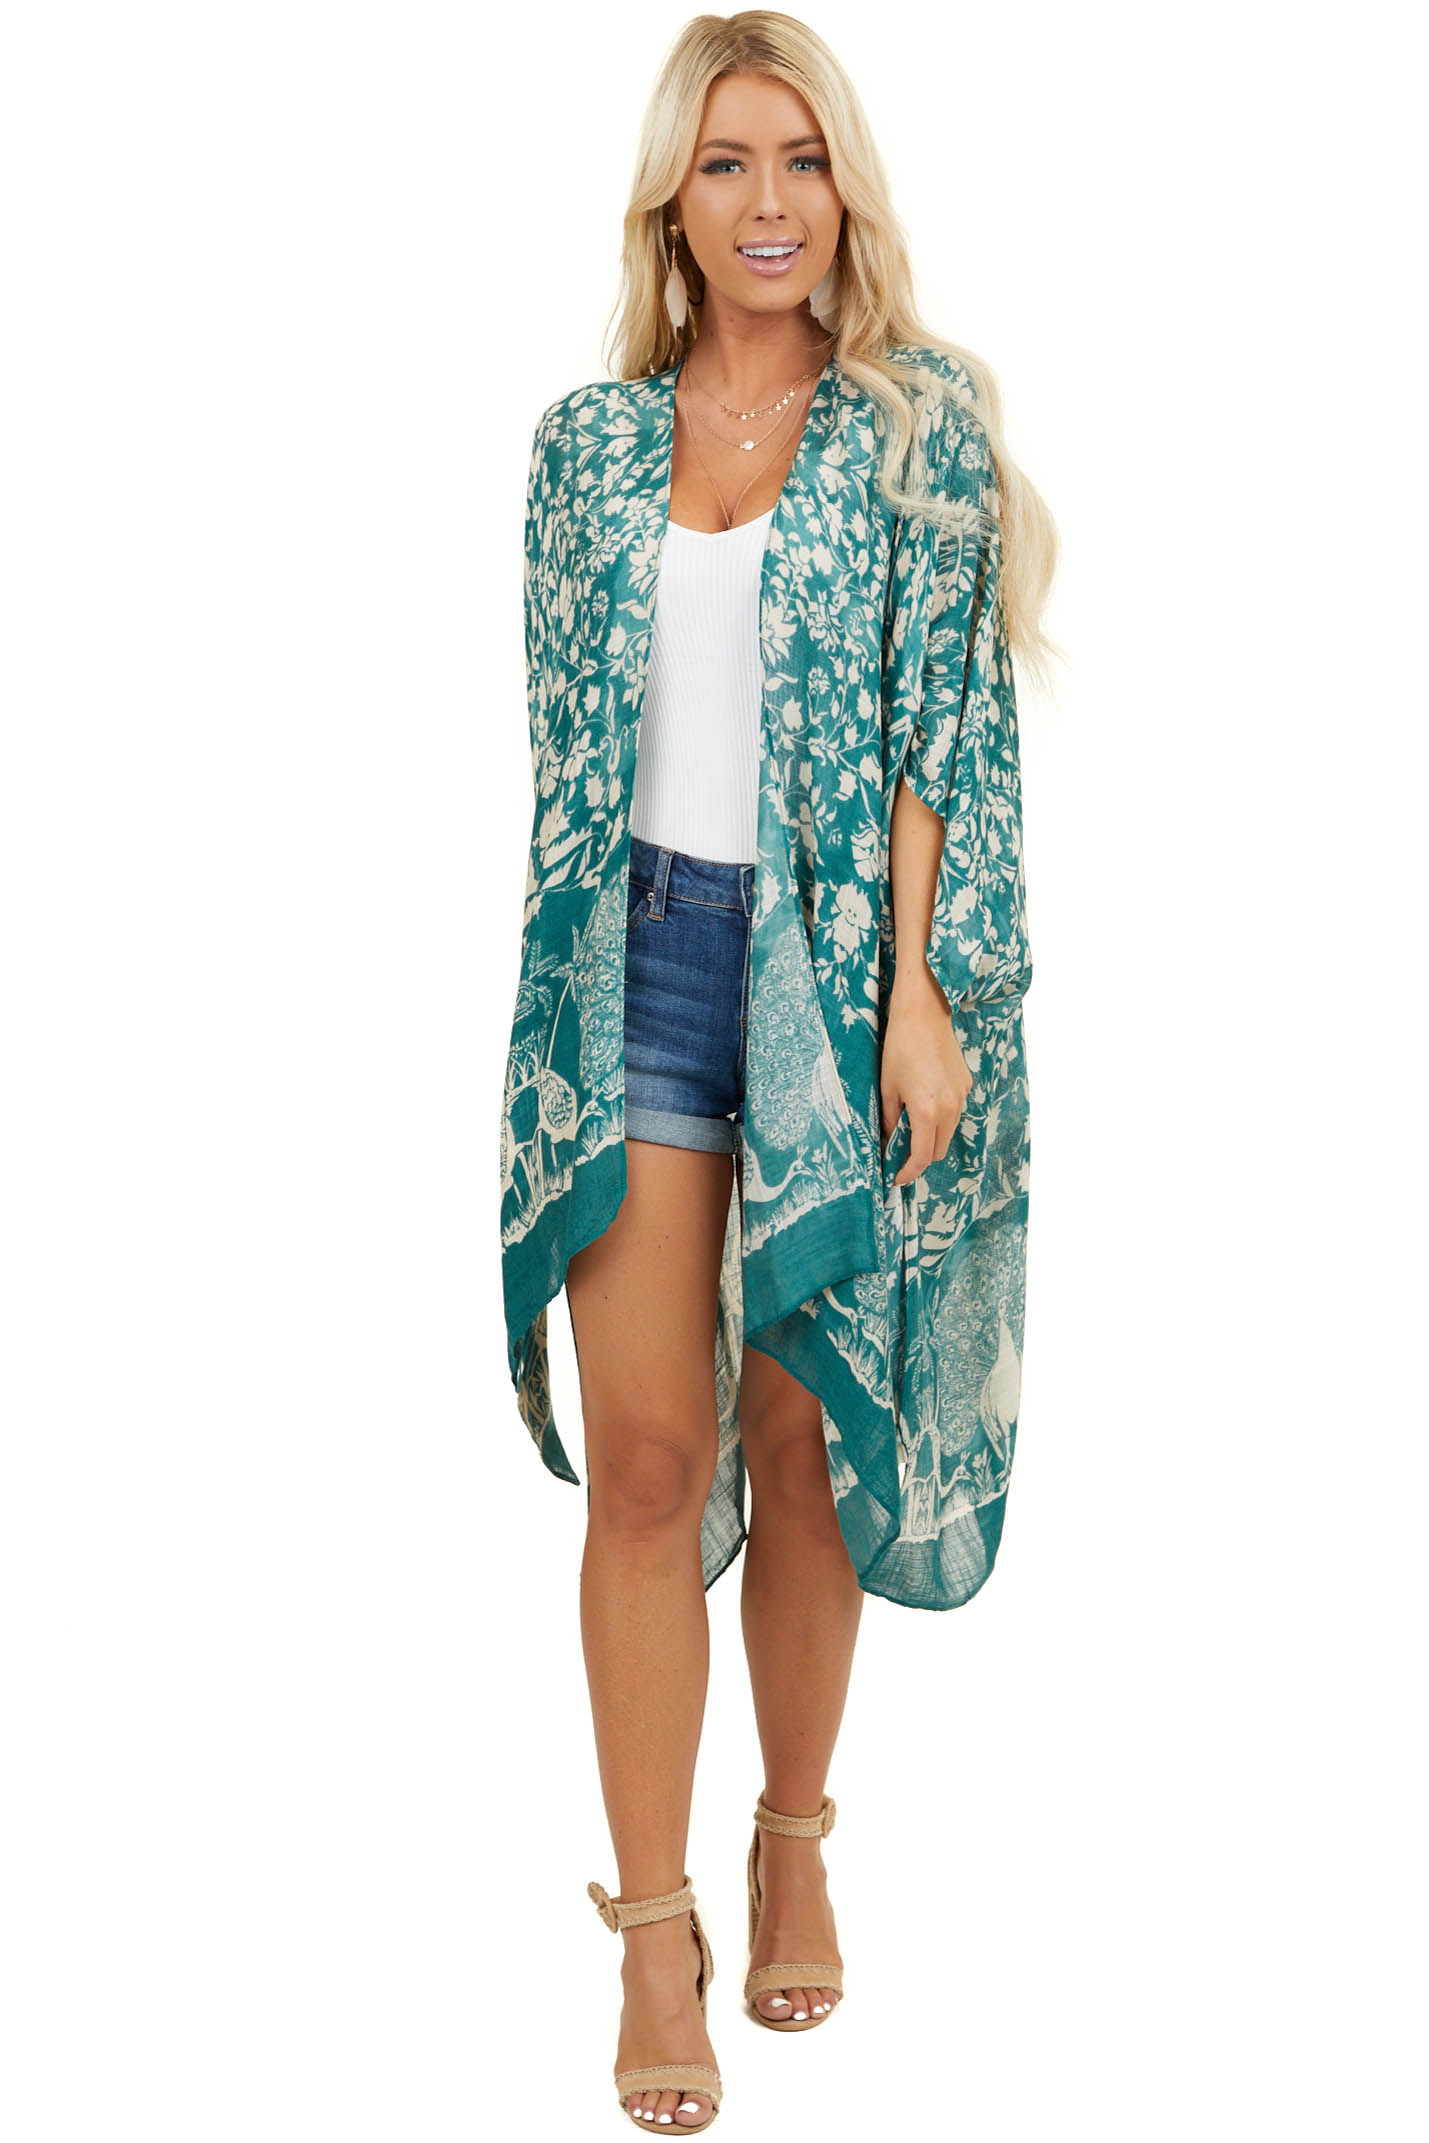 Pine Green Peacock and Floral Print Kimono with Side Slits